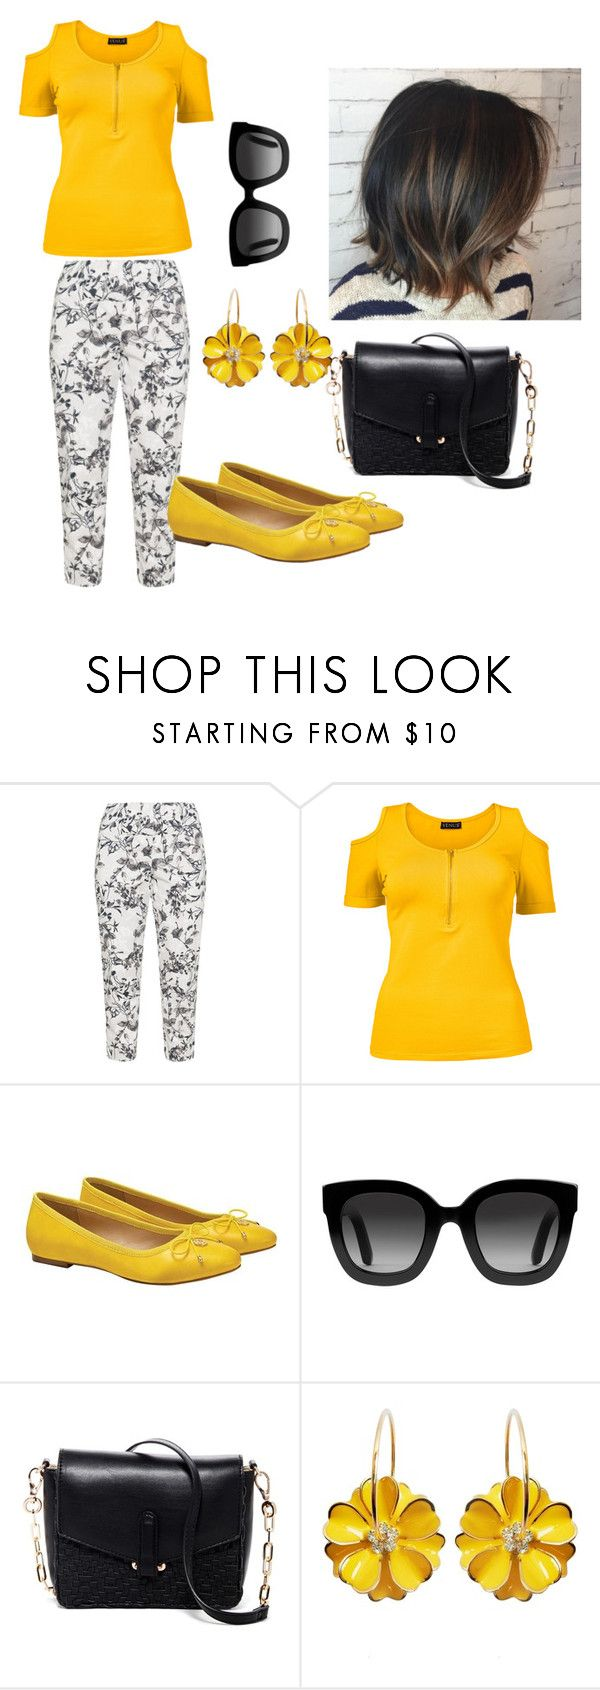 """Black & Yellow, but Casual"" by thespian-at-large ❤ liked on Polyvore featuring KJ Brand, Venus, Gucci, Deux Lux and plus size clothing"